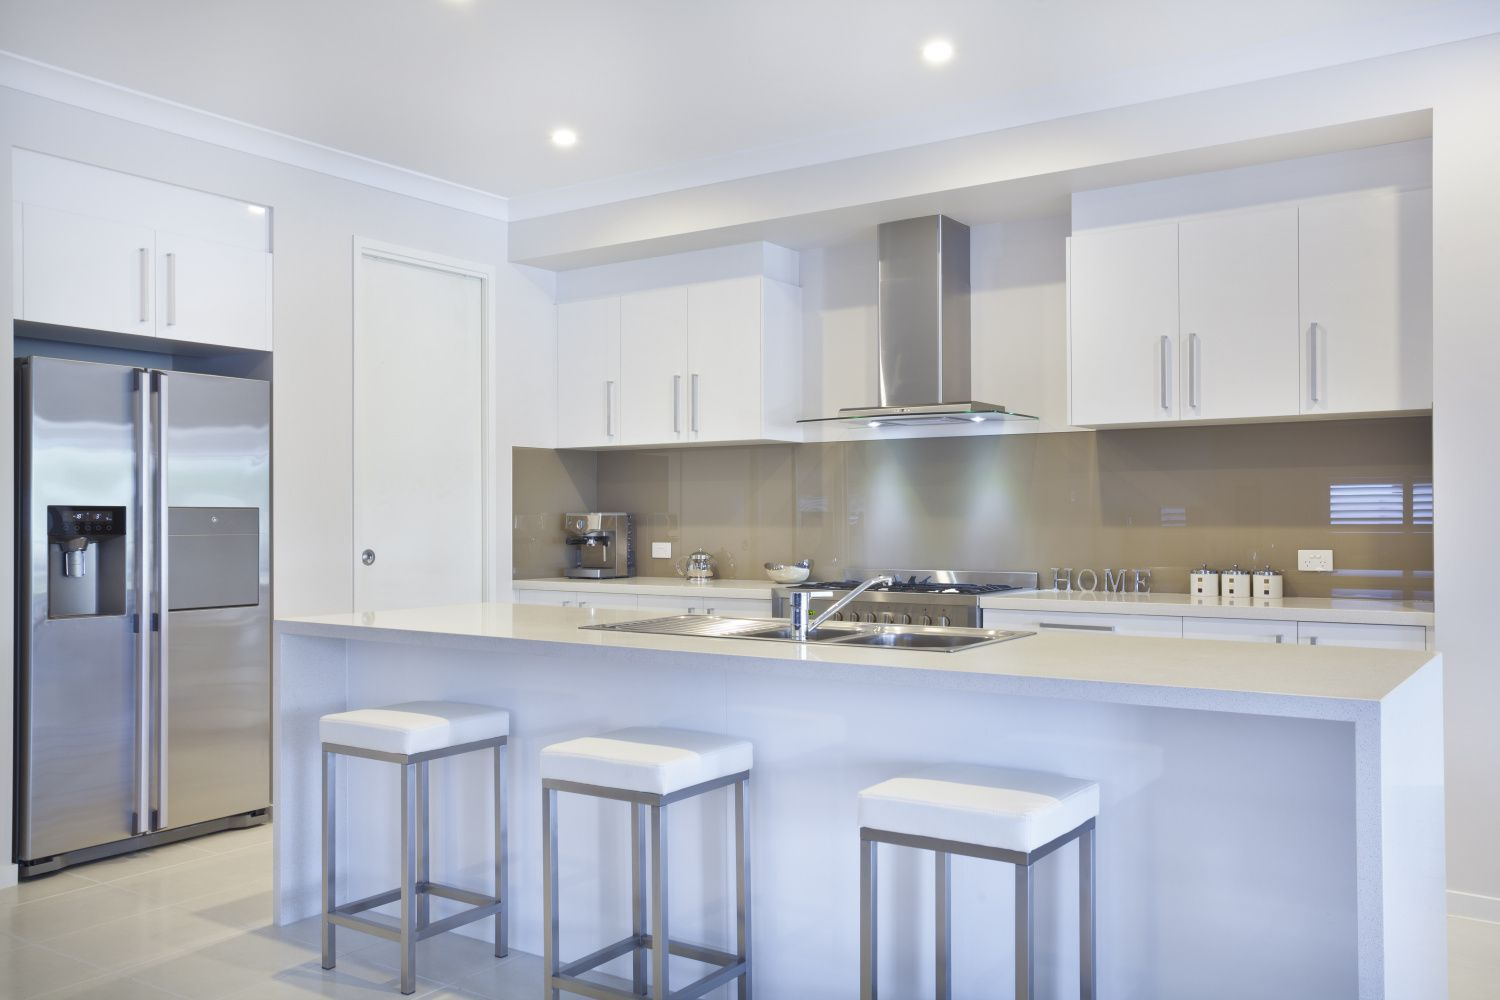 5 reasons to invest in pre-assembled kitchen cabinets